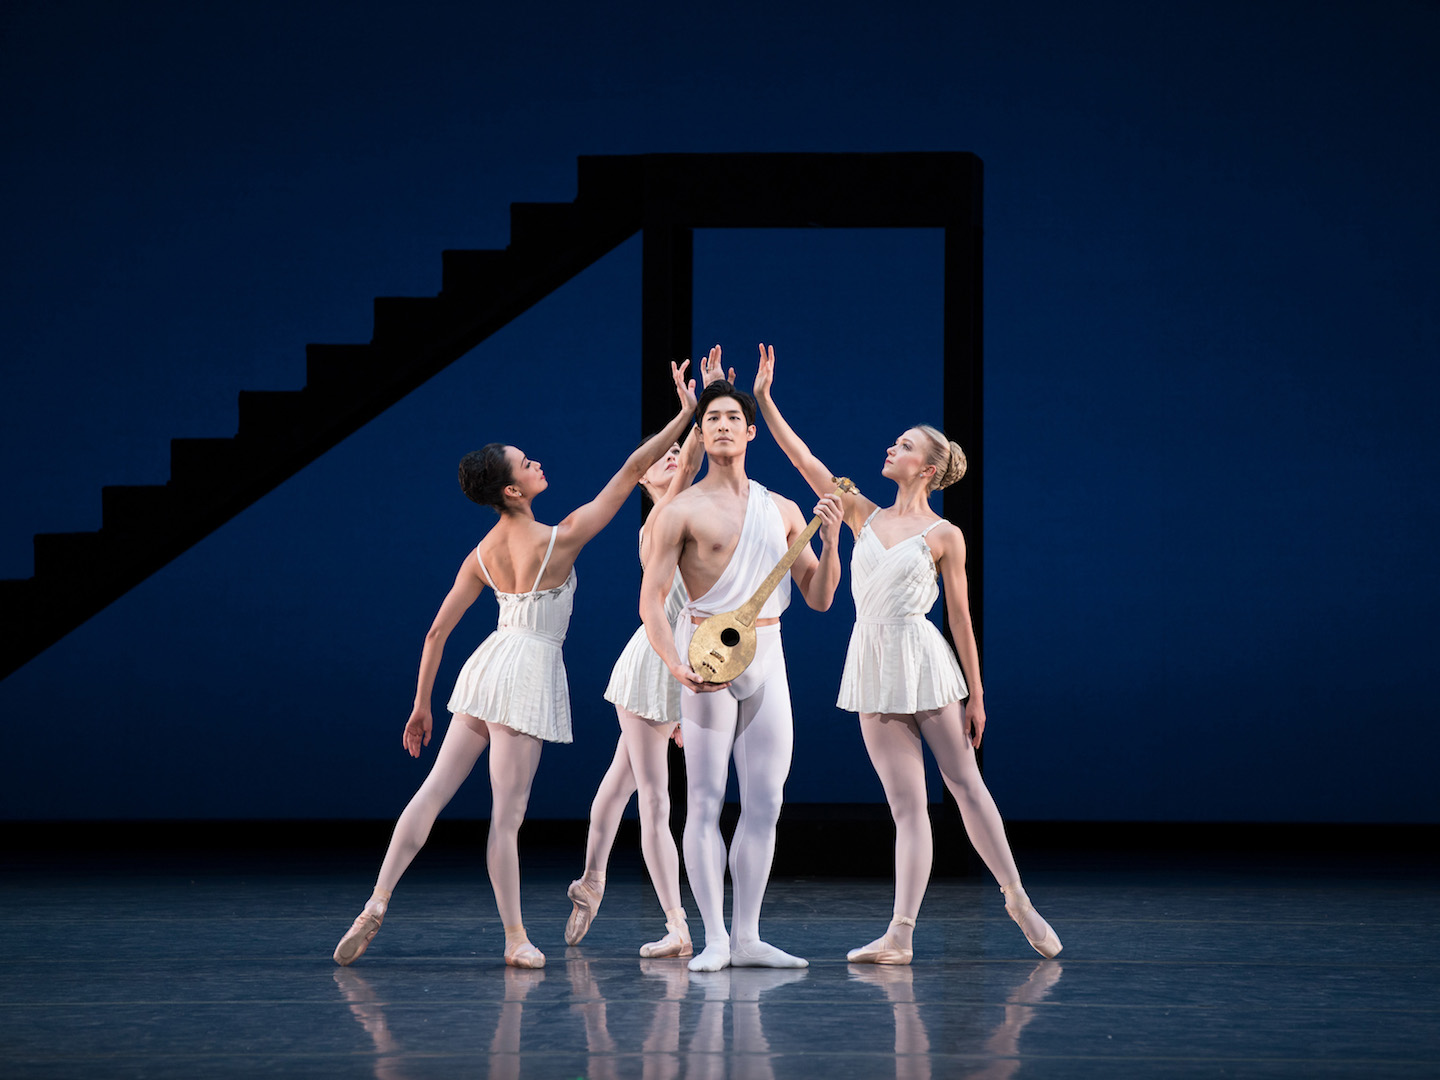 Stella Abrera (Terpsichore), Melanie Hamrick (Calliope), Joo Won Ahn (Apollo) and Katherine Williams (Polyhymnia) in <i>Apollo</i>. © The George Balanchine Trust. Photo: Rosalie O'Connor.